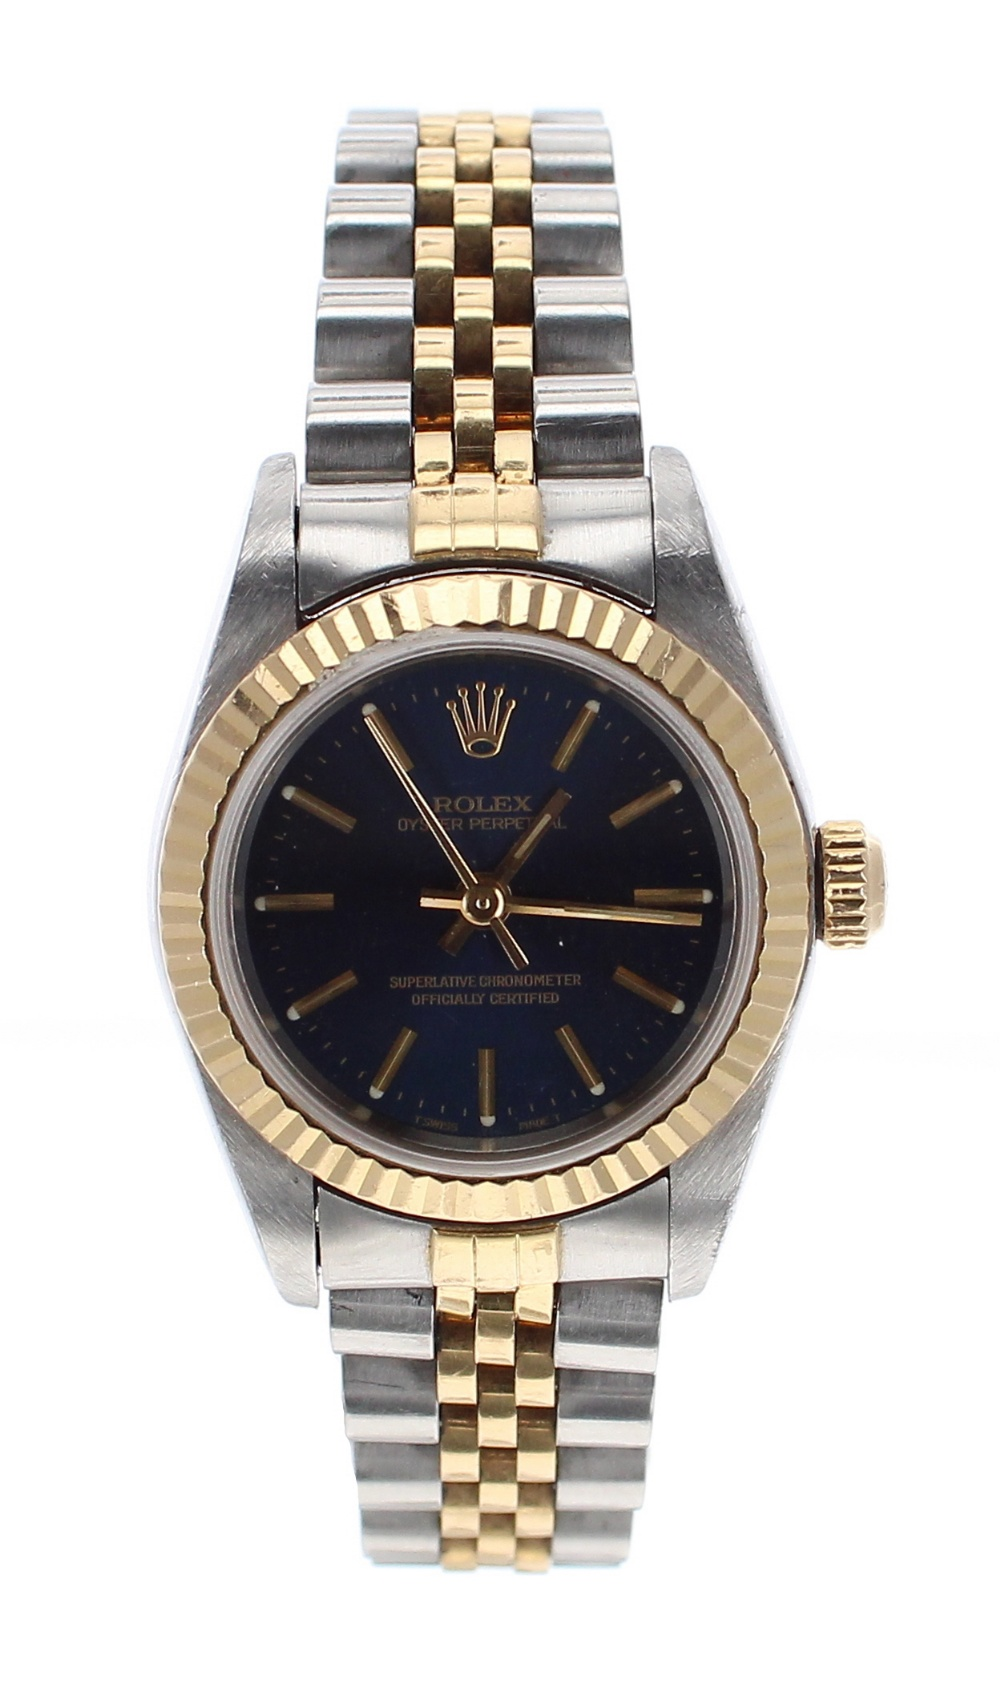 Lot 32 - Rolex Oyster Perpetual stainless steel and gold lady's bracelet watch, circular blue dial with baton